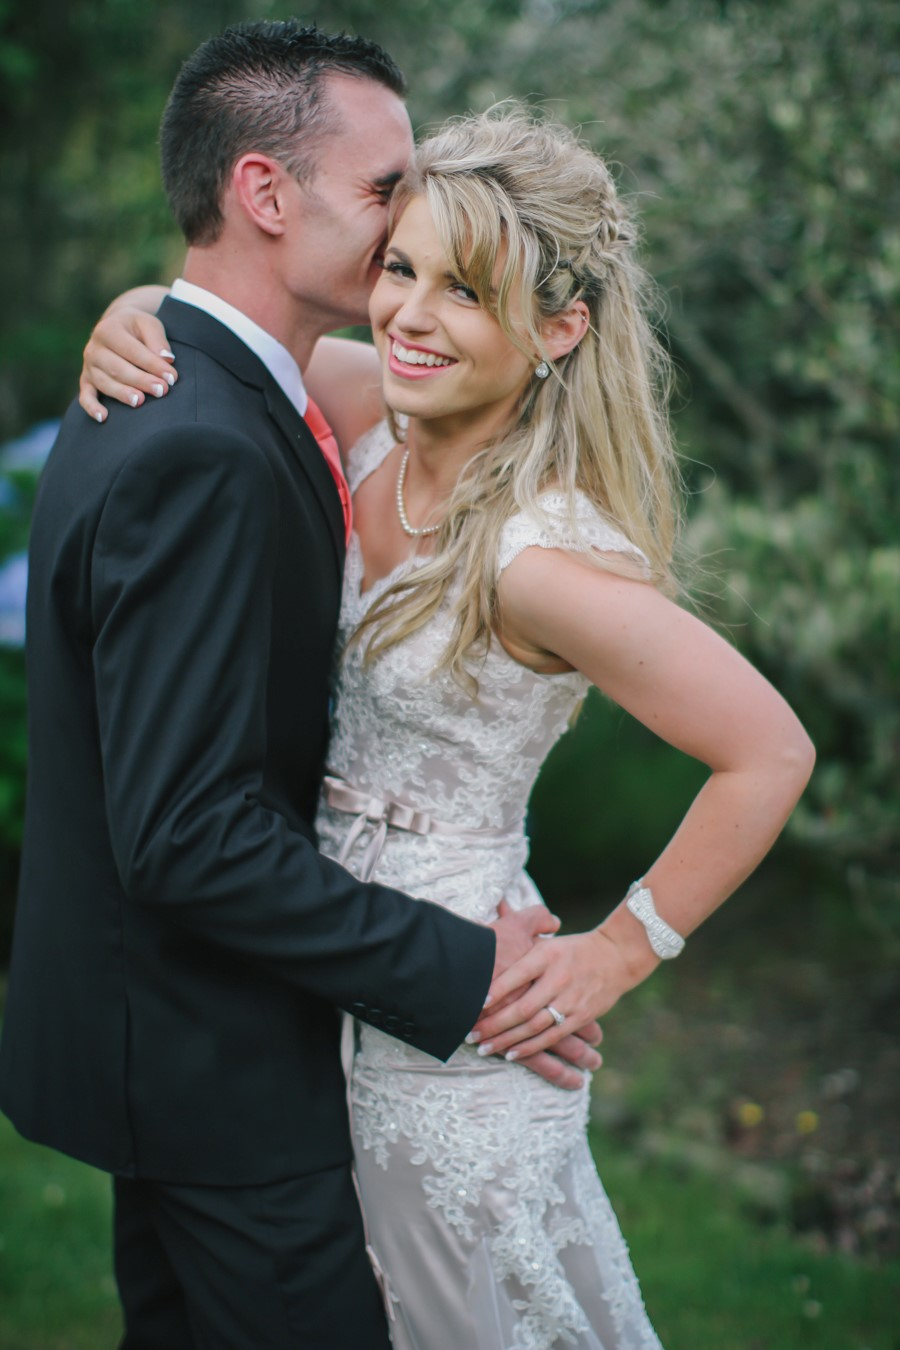 silverdale_wedding_nz_photographer-173